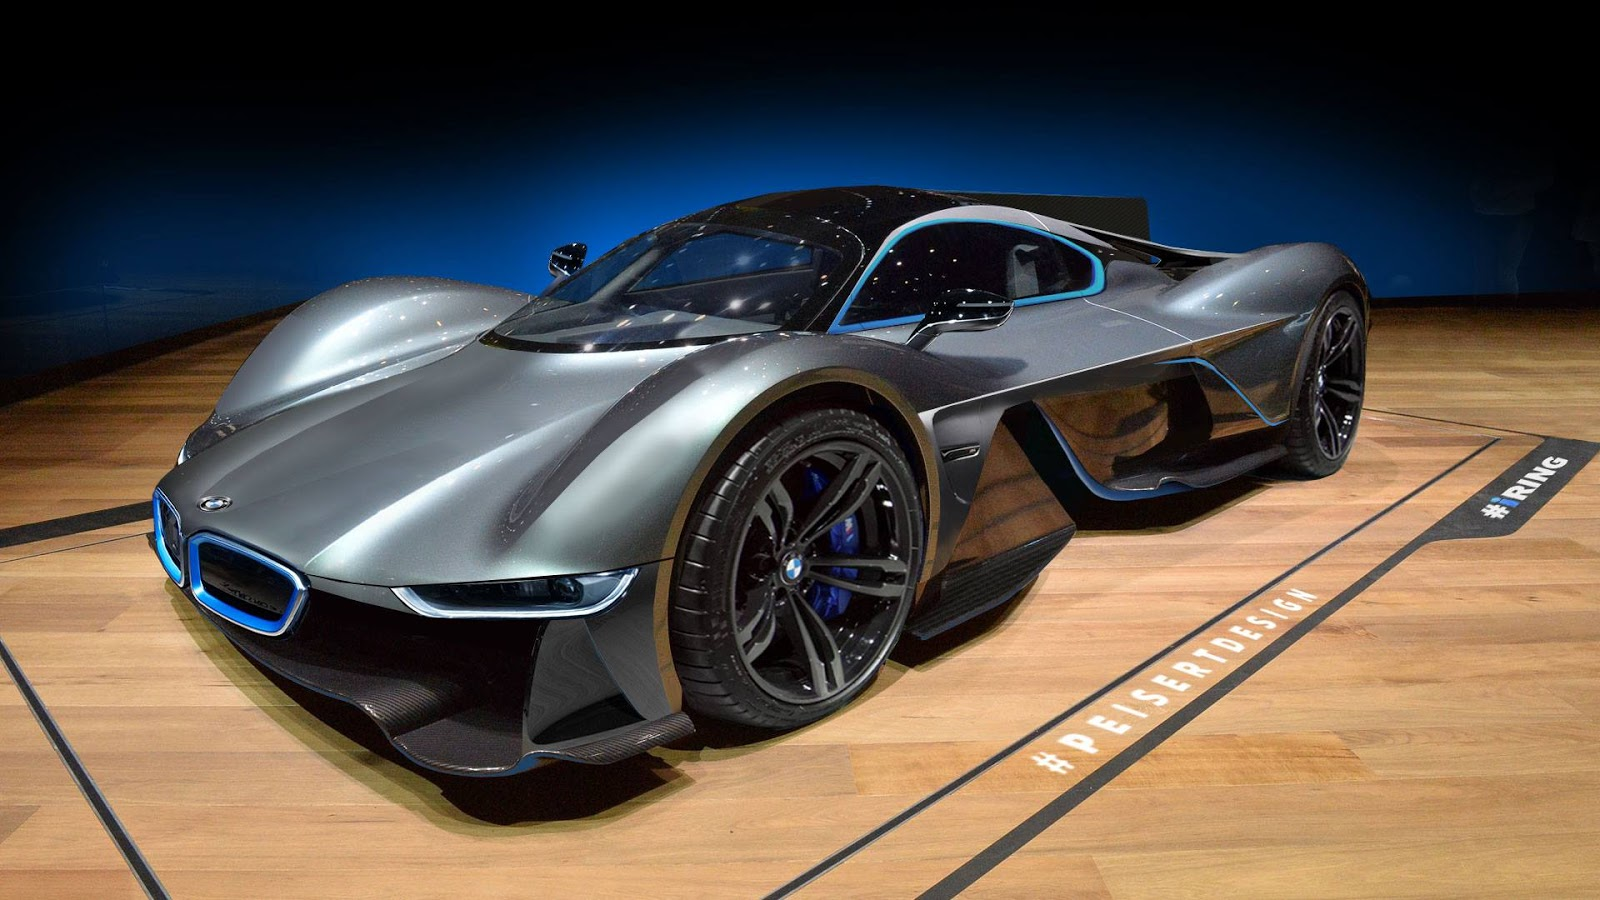 A BMW M Hypercar Is Unlikely But Could Be Exceptional